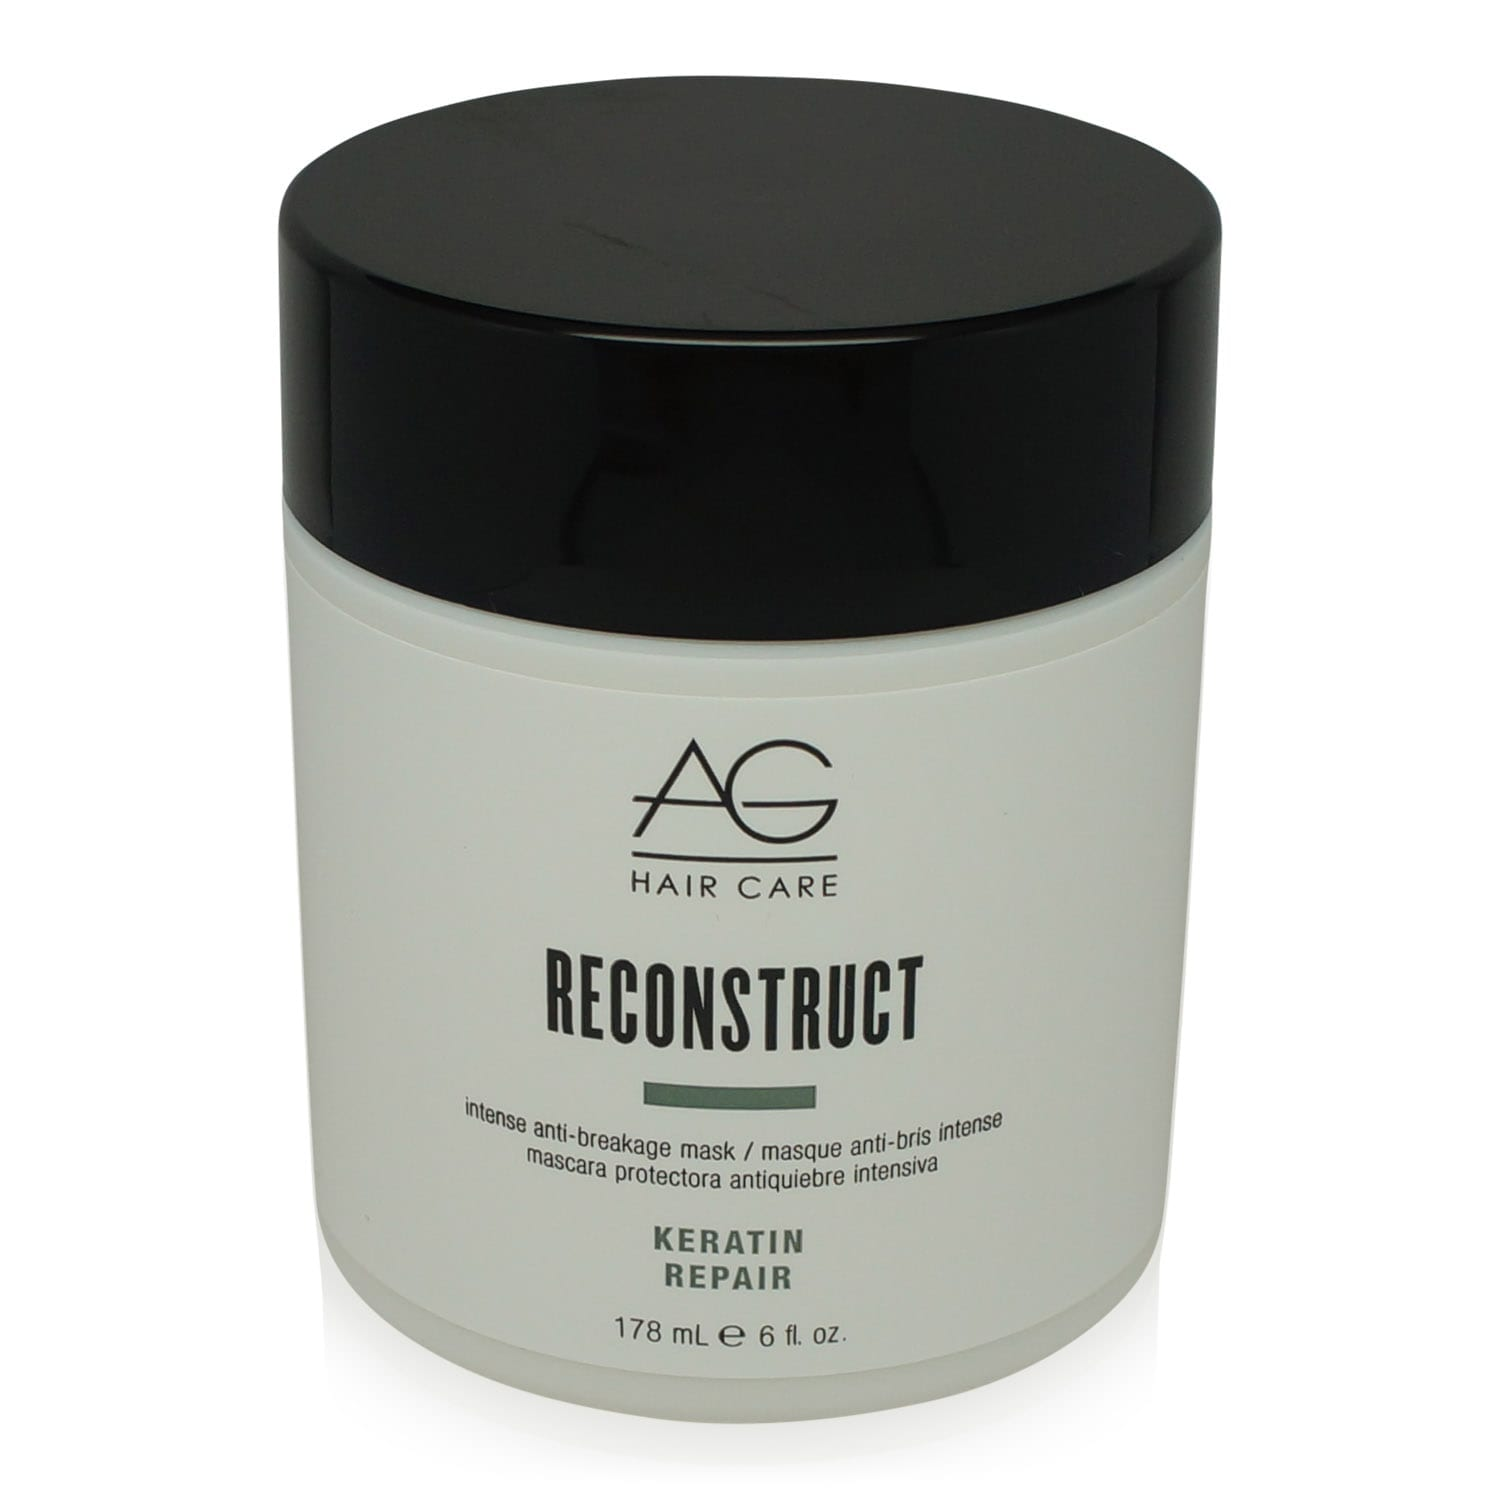 AG Hair Care Reconstruct